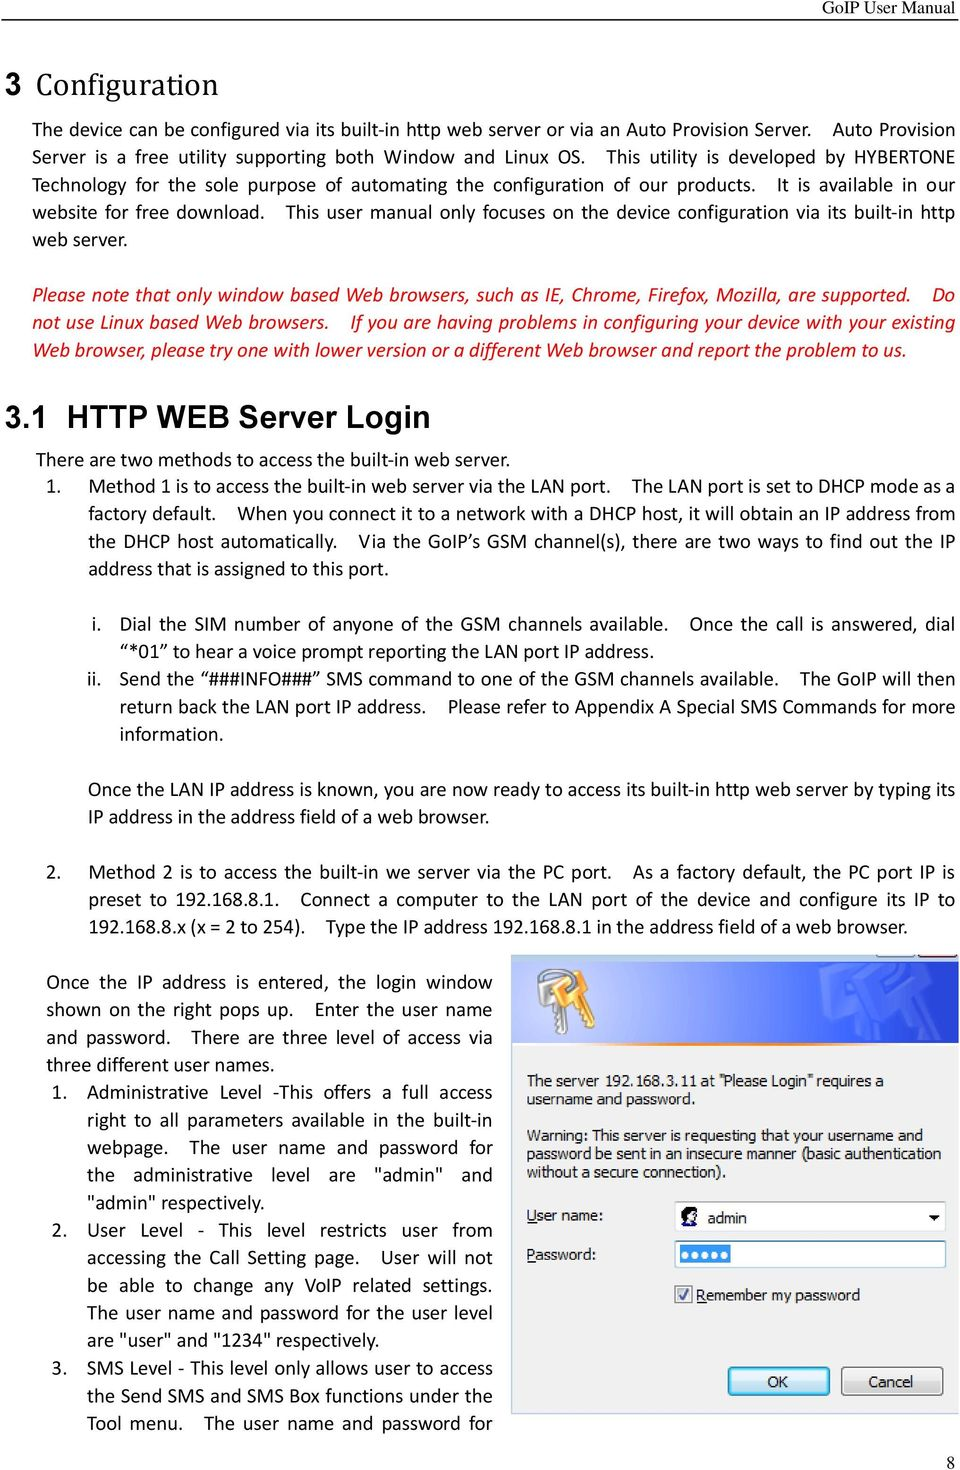 This user manual only focuses on the device configuration via its built-in http web server. Please note that only window based Web browsers, such as IE, Chrome, Firefox, Mozilla, are supported.